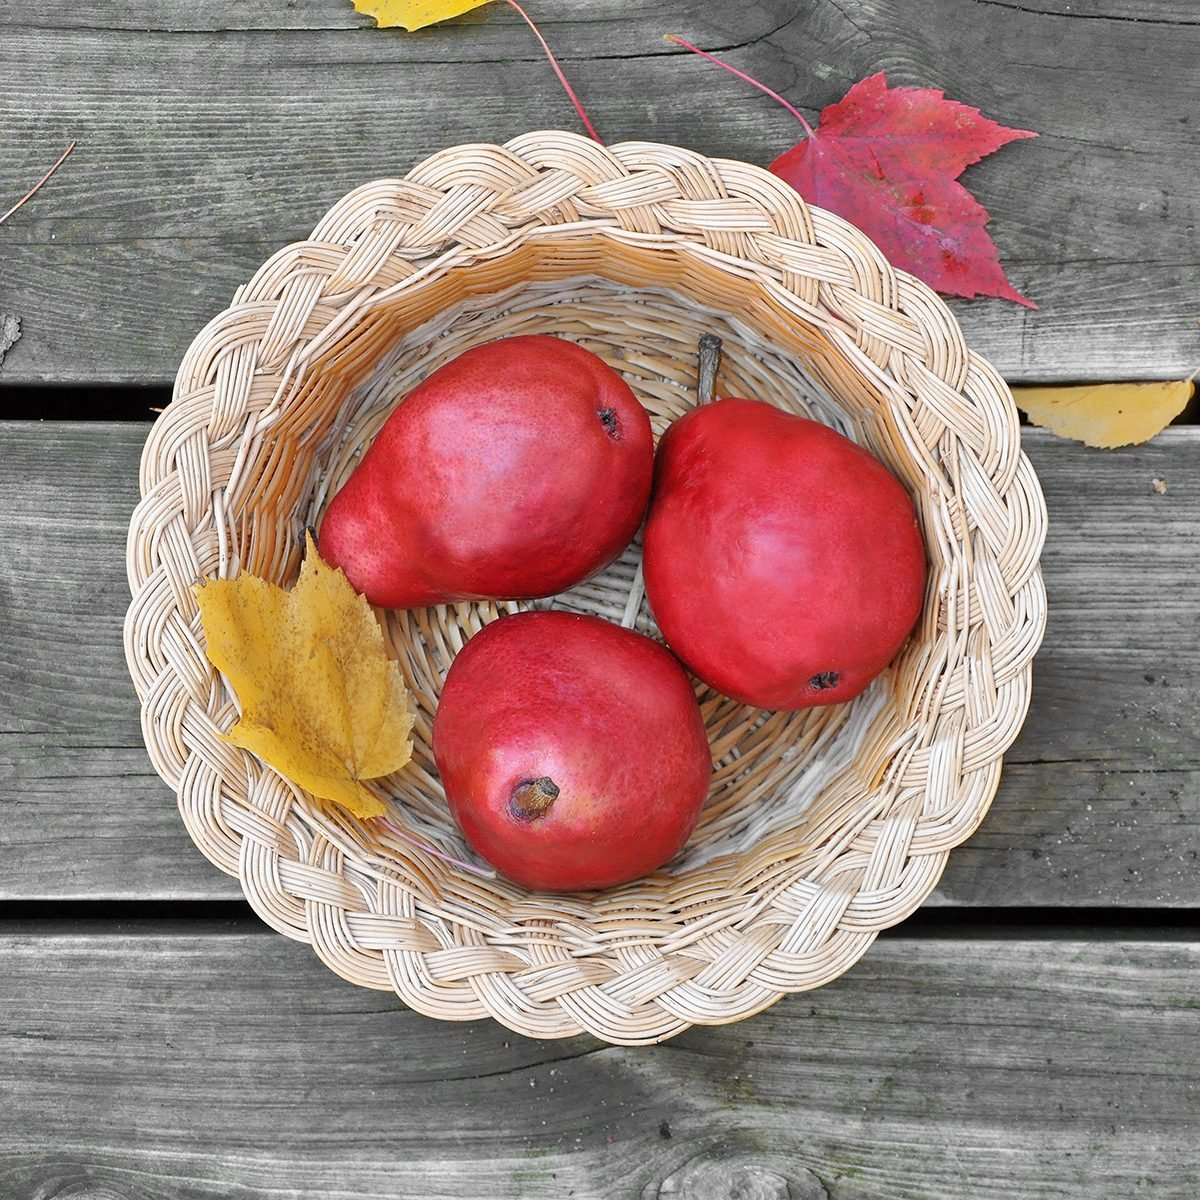 Basket of Red Anjou pears.